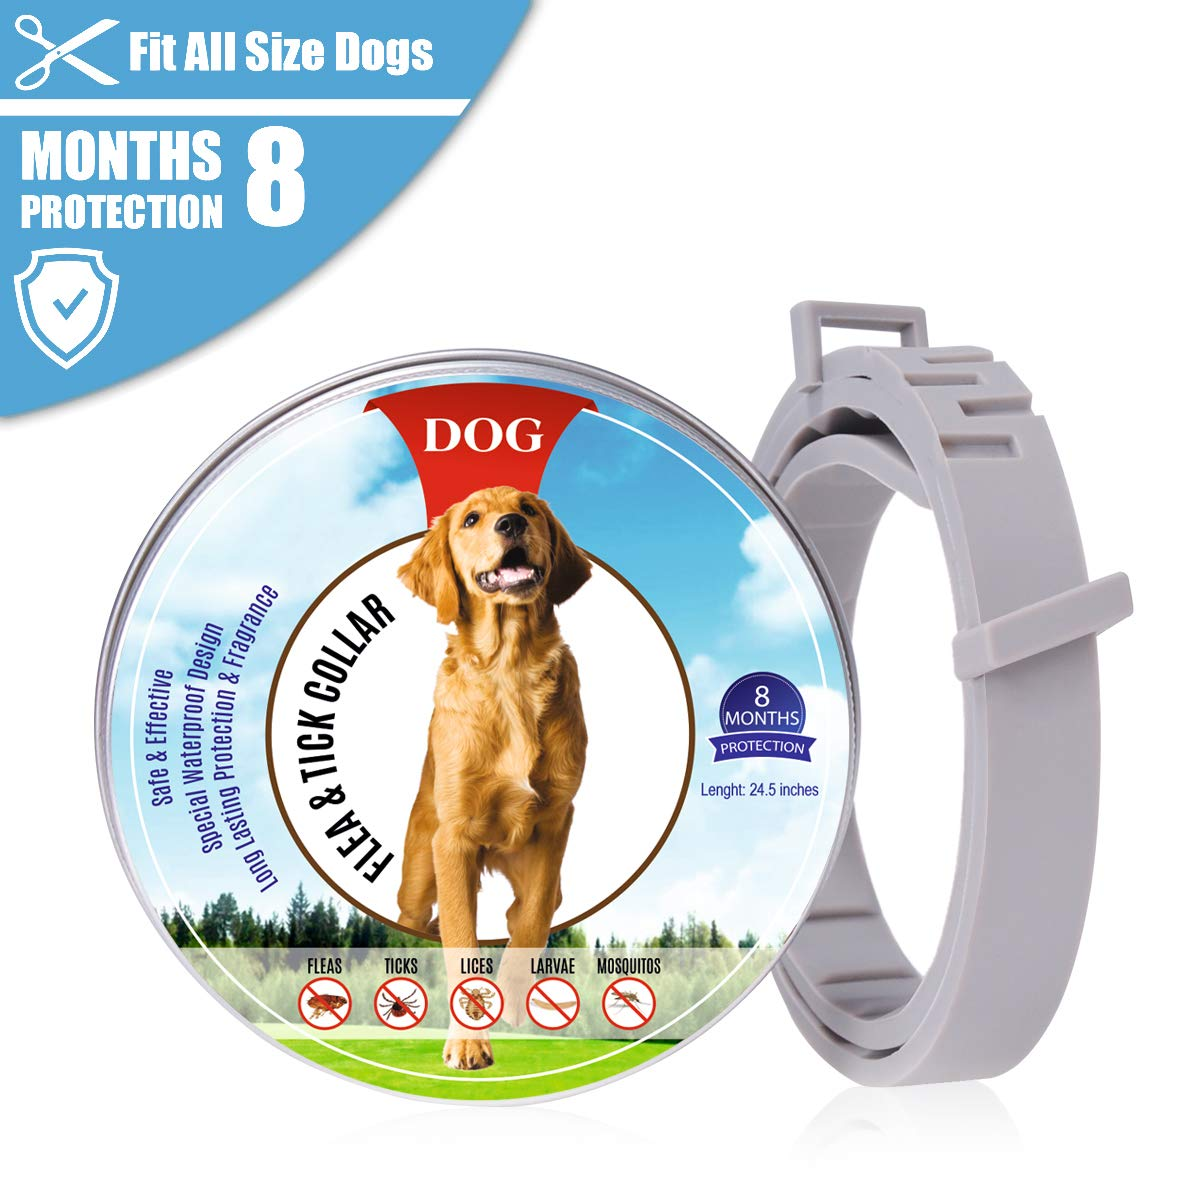 24.5 Inches Flea and Tick Collars for Dogs fits for Small Medium Large Pets Medium Natural,Safe and Waterproof Anti Flea Collar with 8 Months Effectiveness Protection,Adjustable Length 62cm